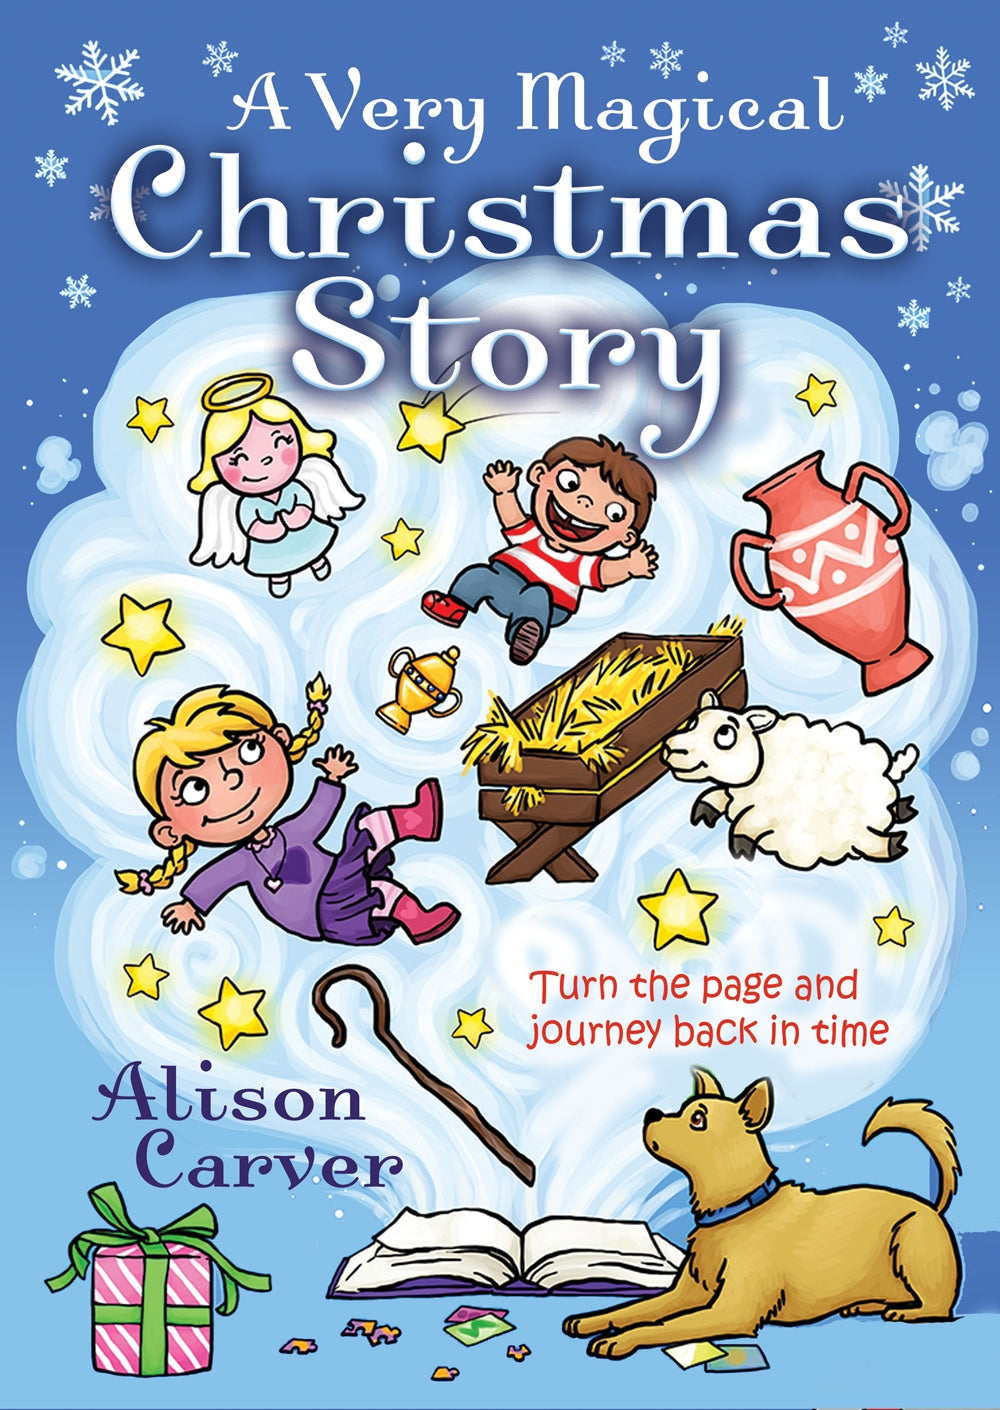 A Very Magical Christmas Story Book And Cd New For 2019 Cd OnlyA Very Magical Christmas Story Book And Cd New For 2019 Cd Only